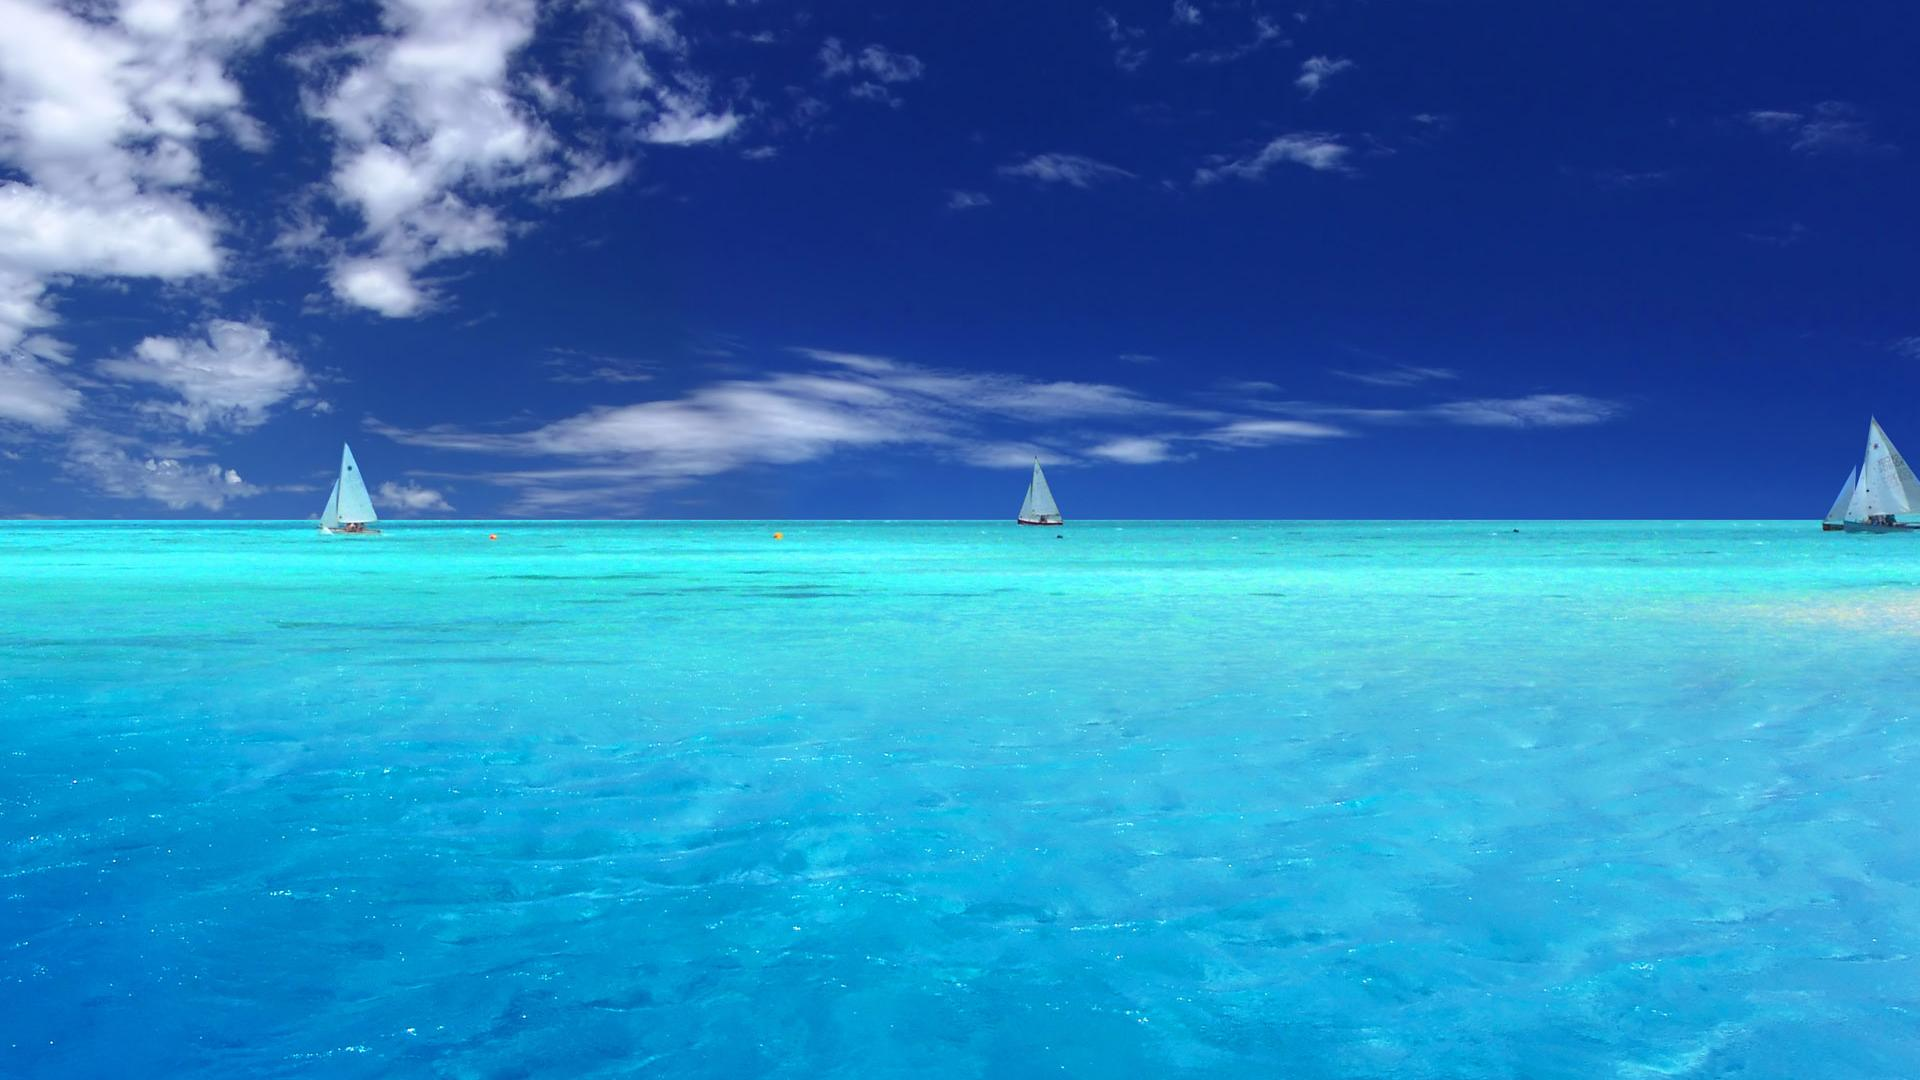 sea wallpaper 4jpg 1920x1080